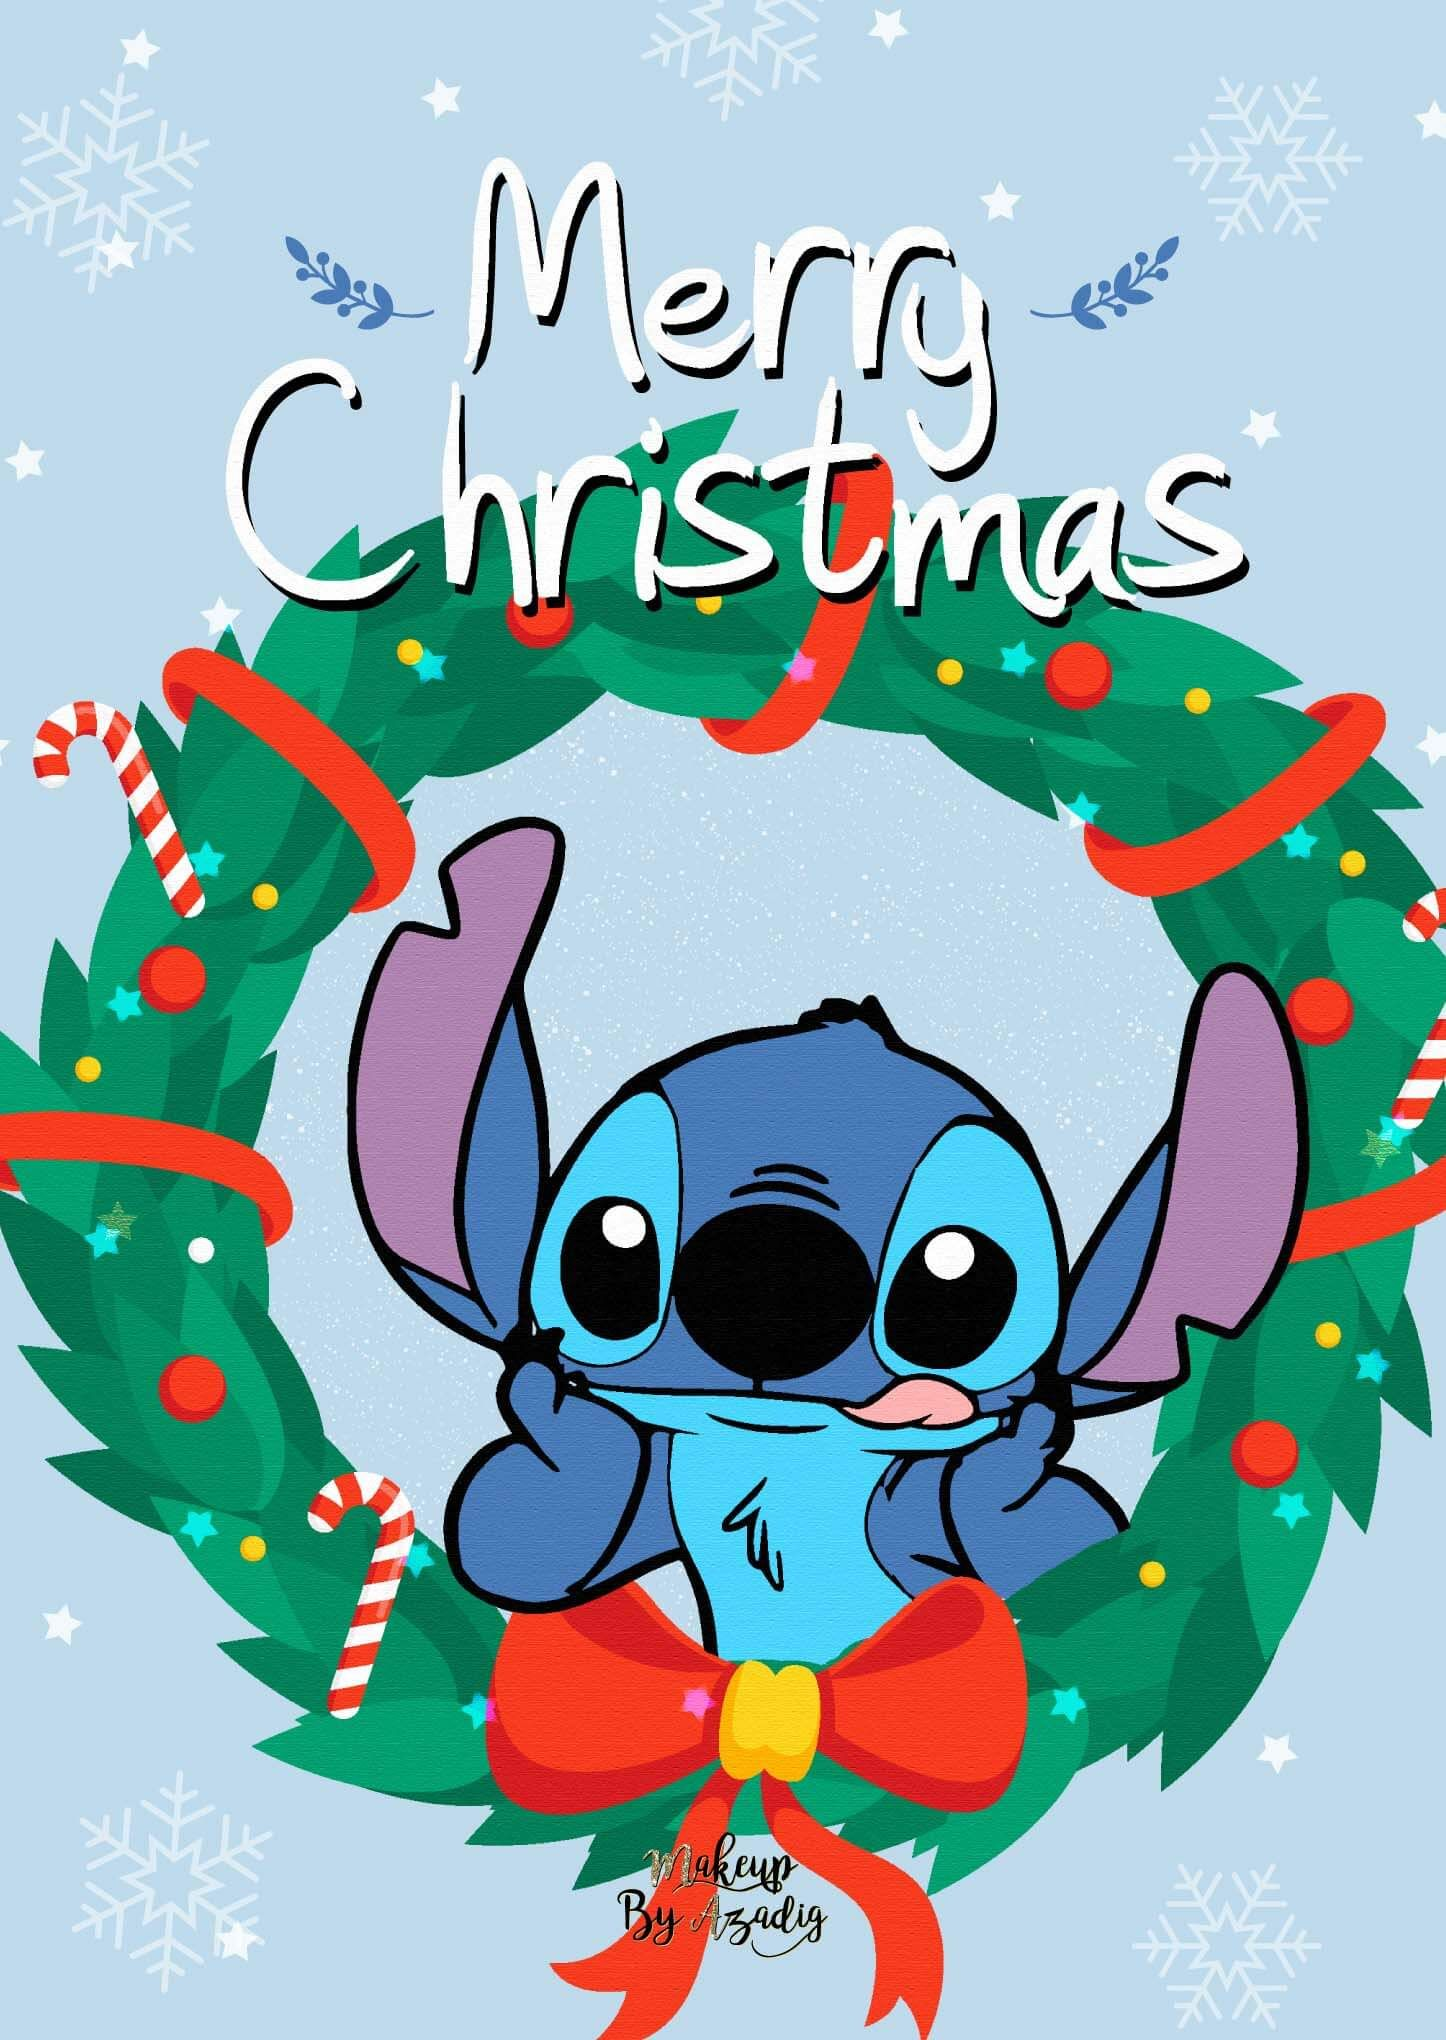 9 Fond D écran Disney Stitch Christmas Wallpaper Fond D écran